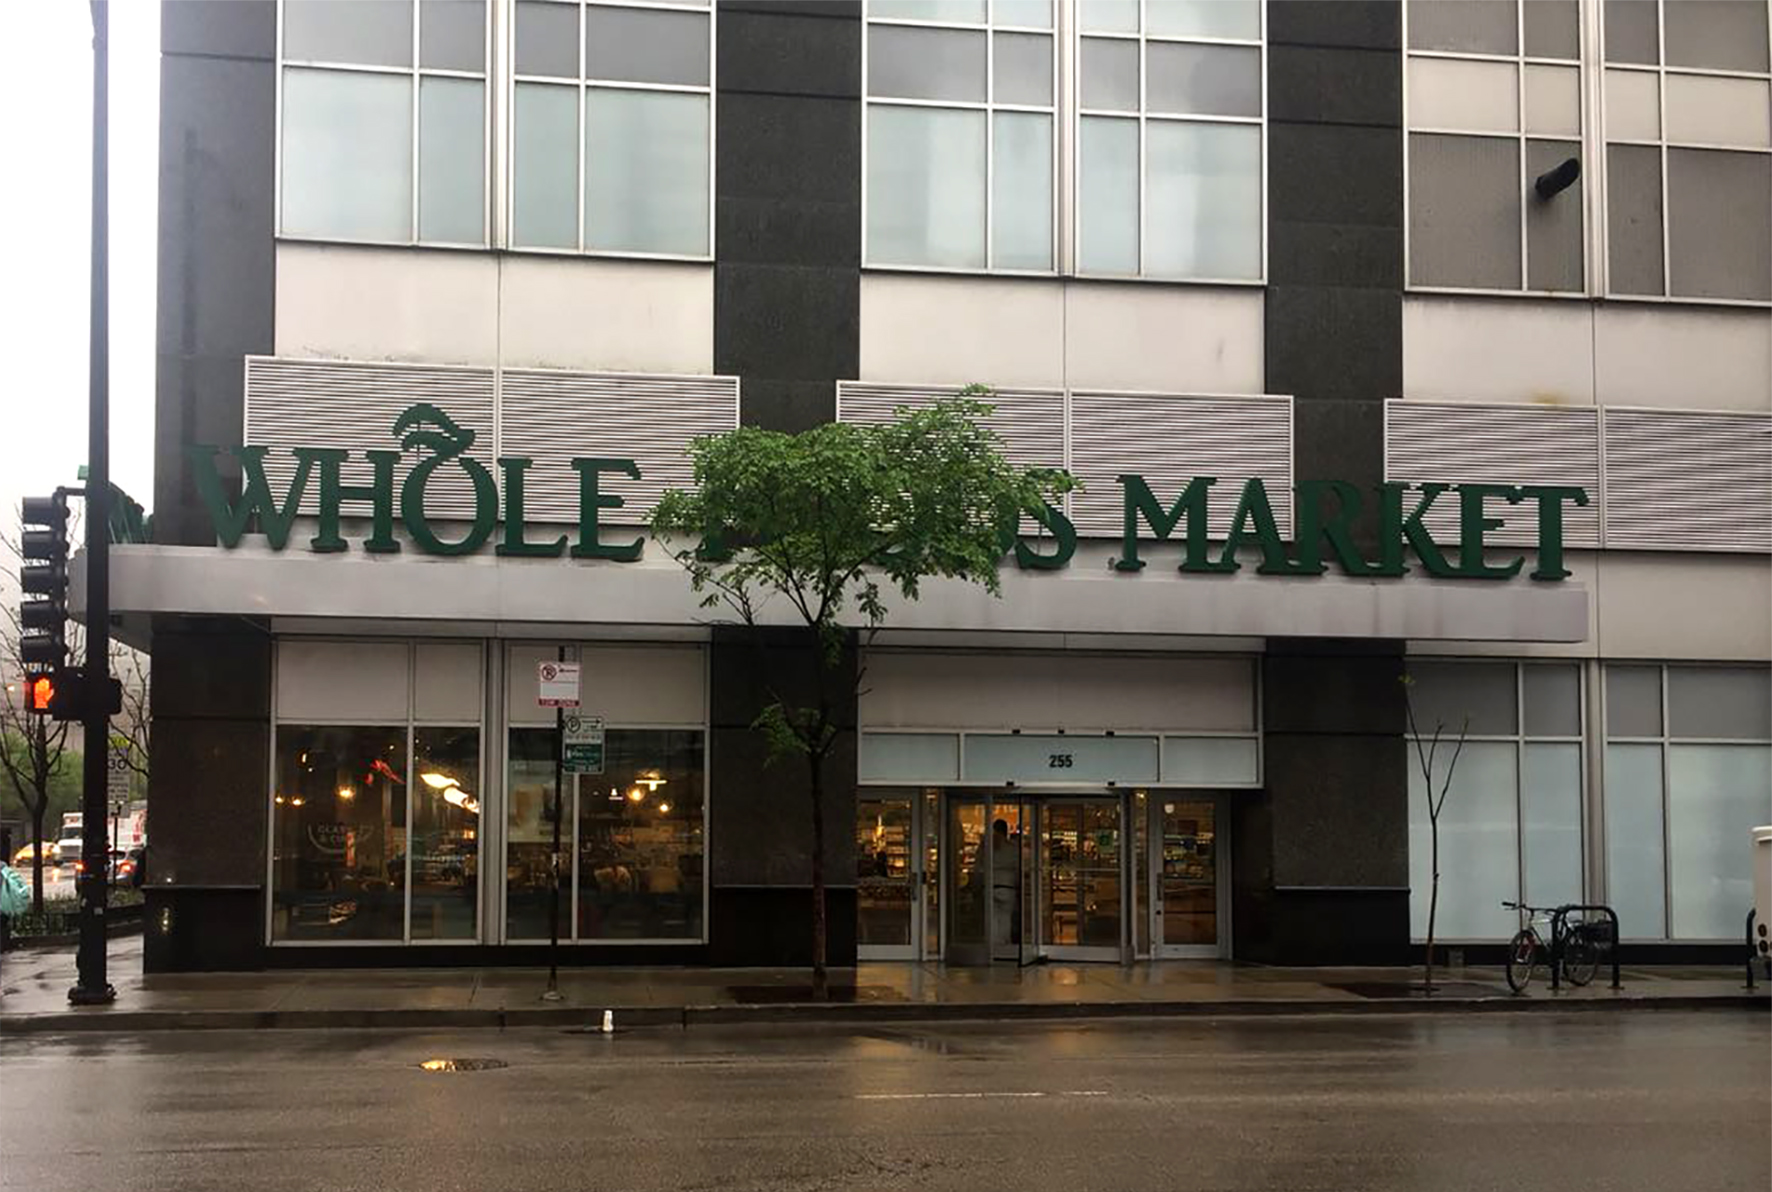 Whole Foods Market, Chicago